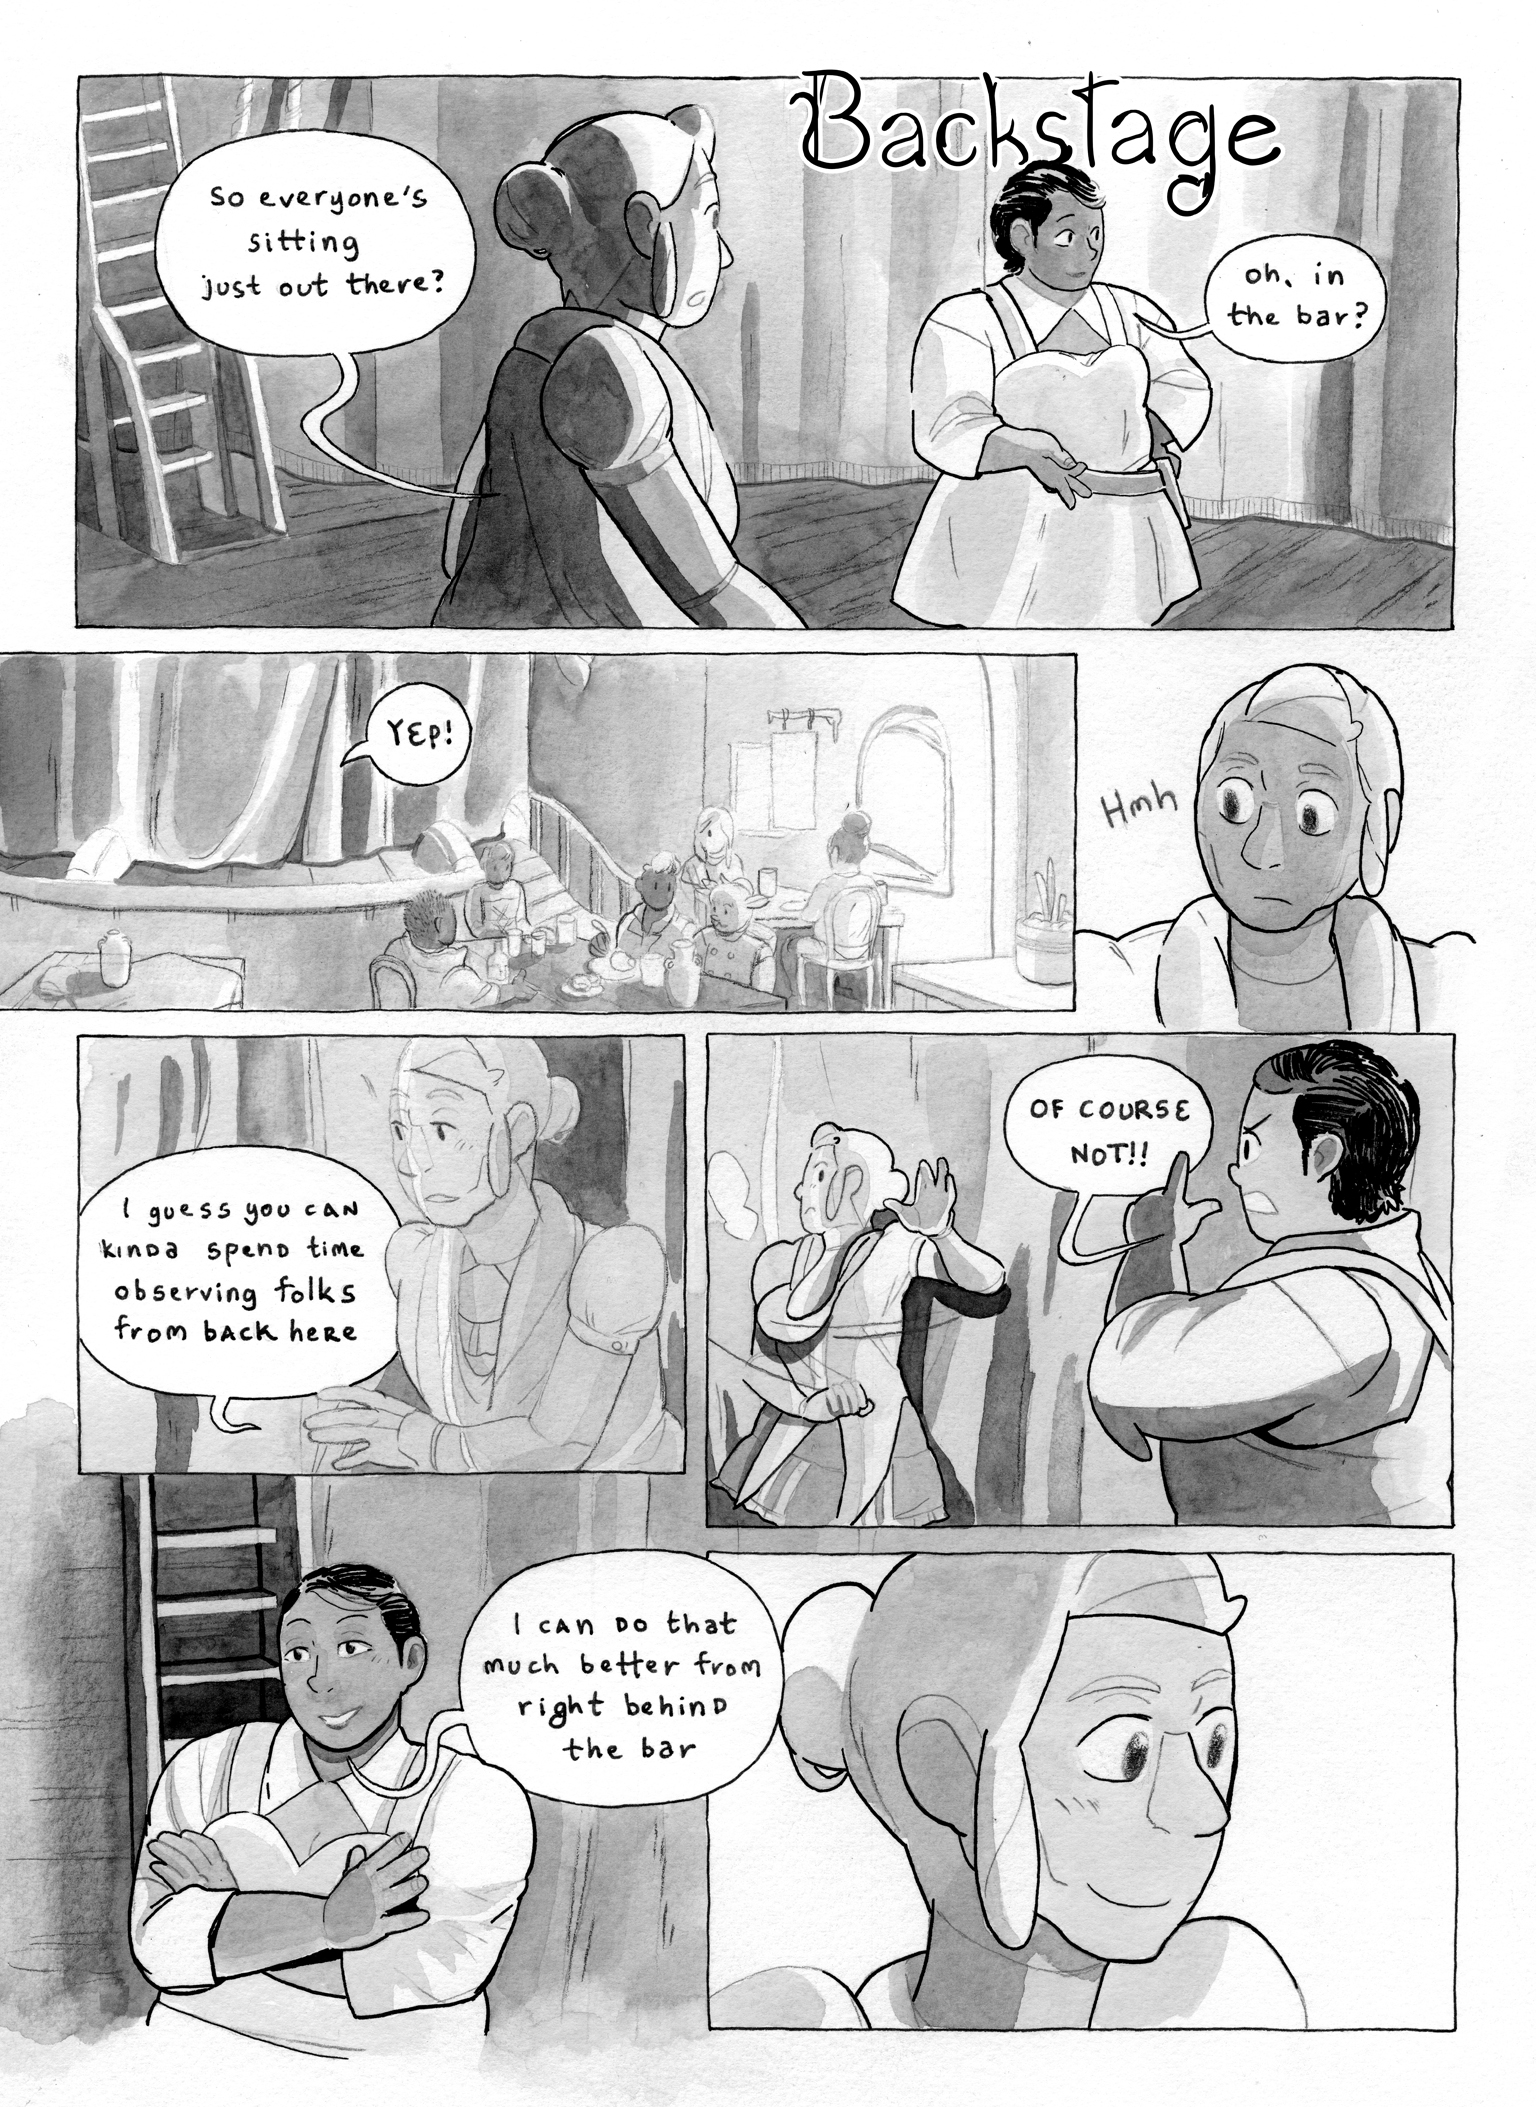 Comic page 20 posted March 18, 2019